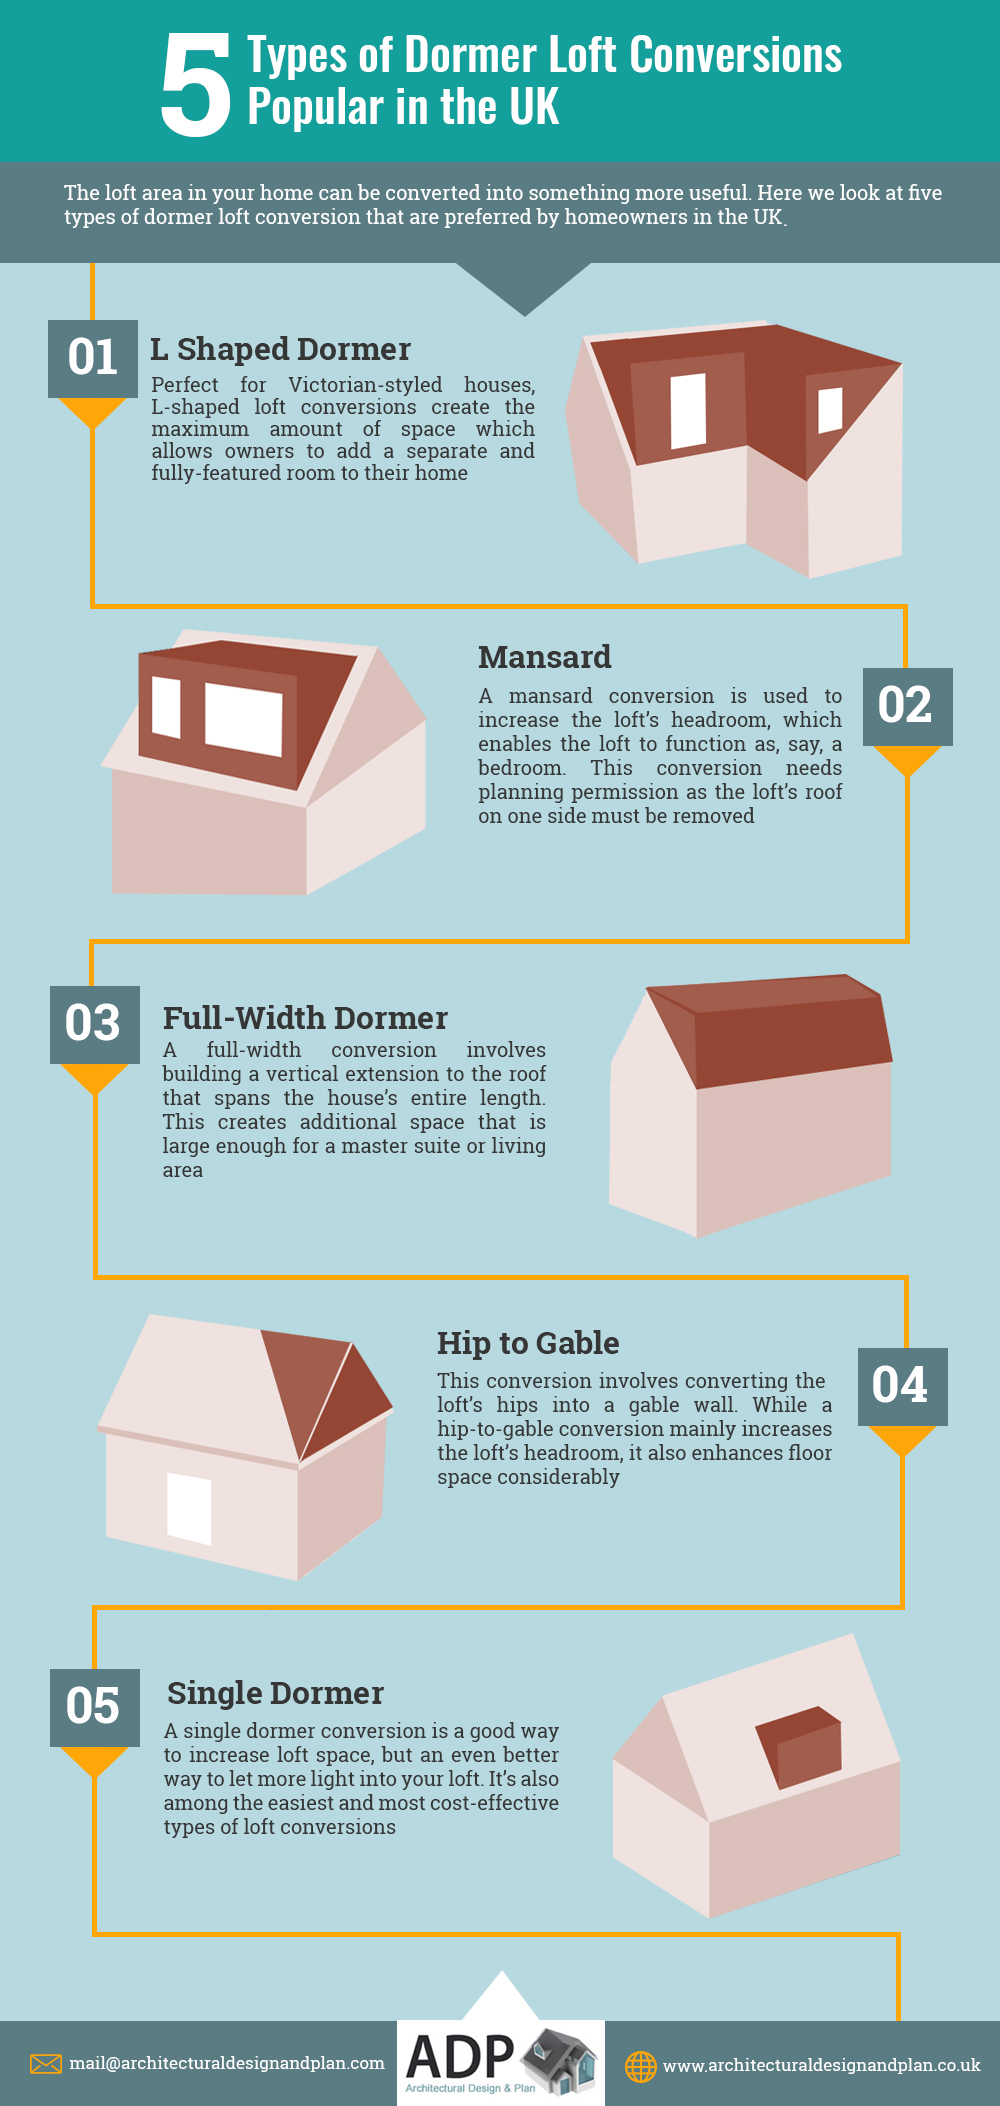 Types of Dormer Loft Conversions